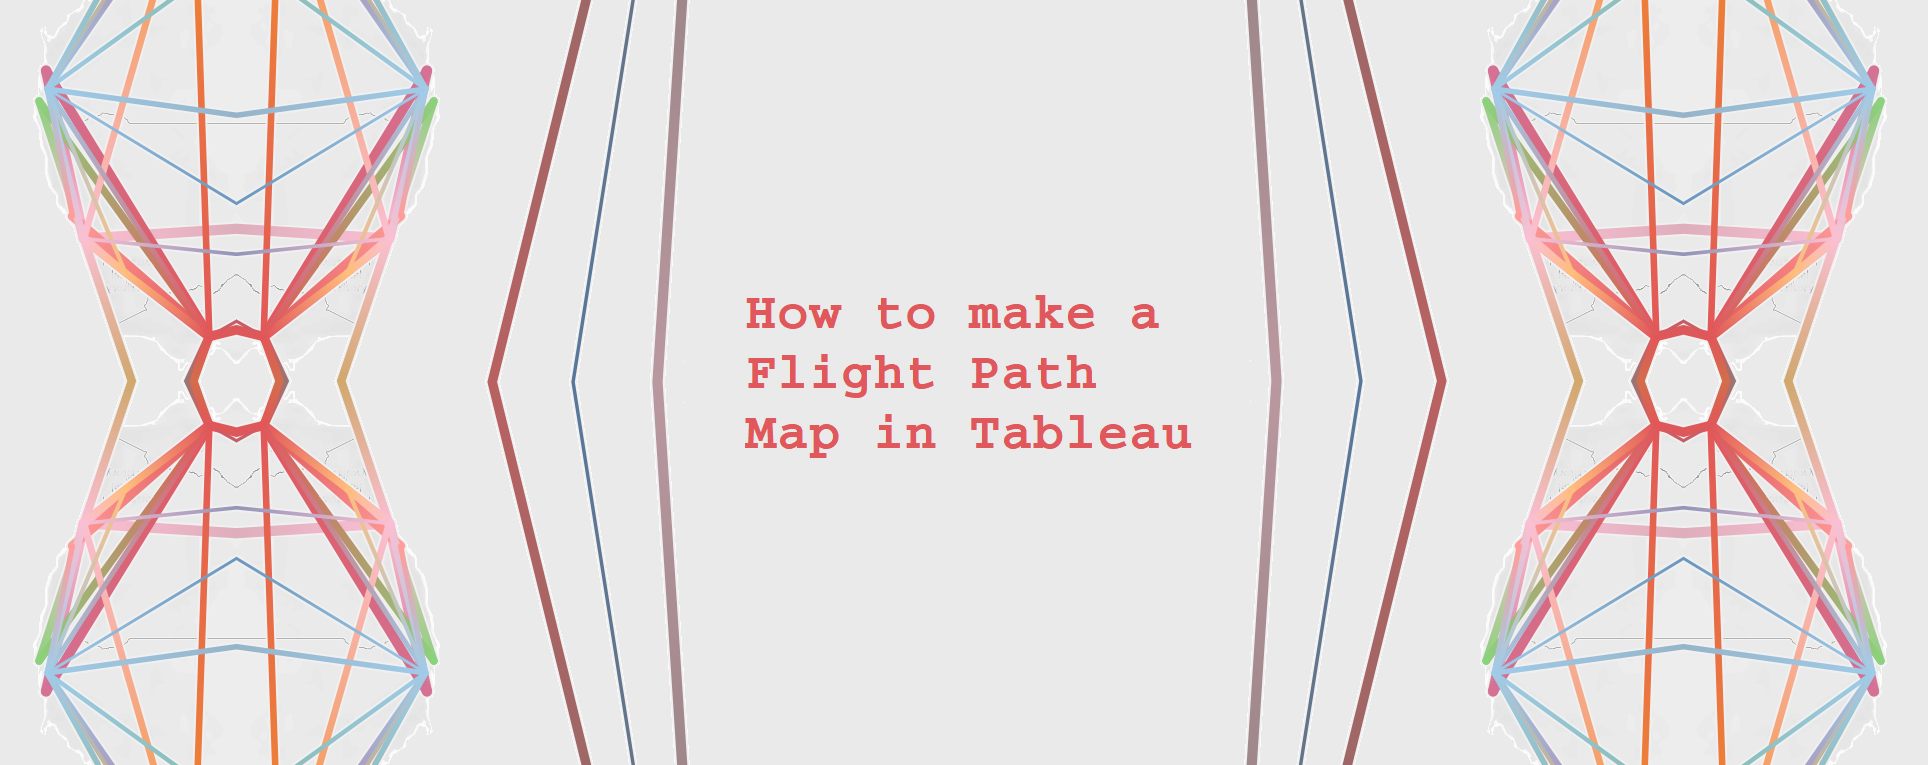 How to make a Flight Path Map in Tableau